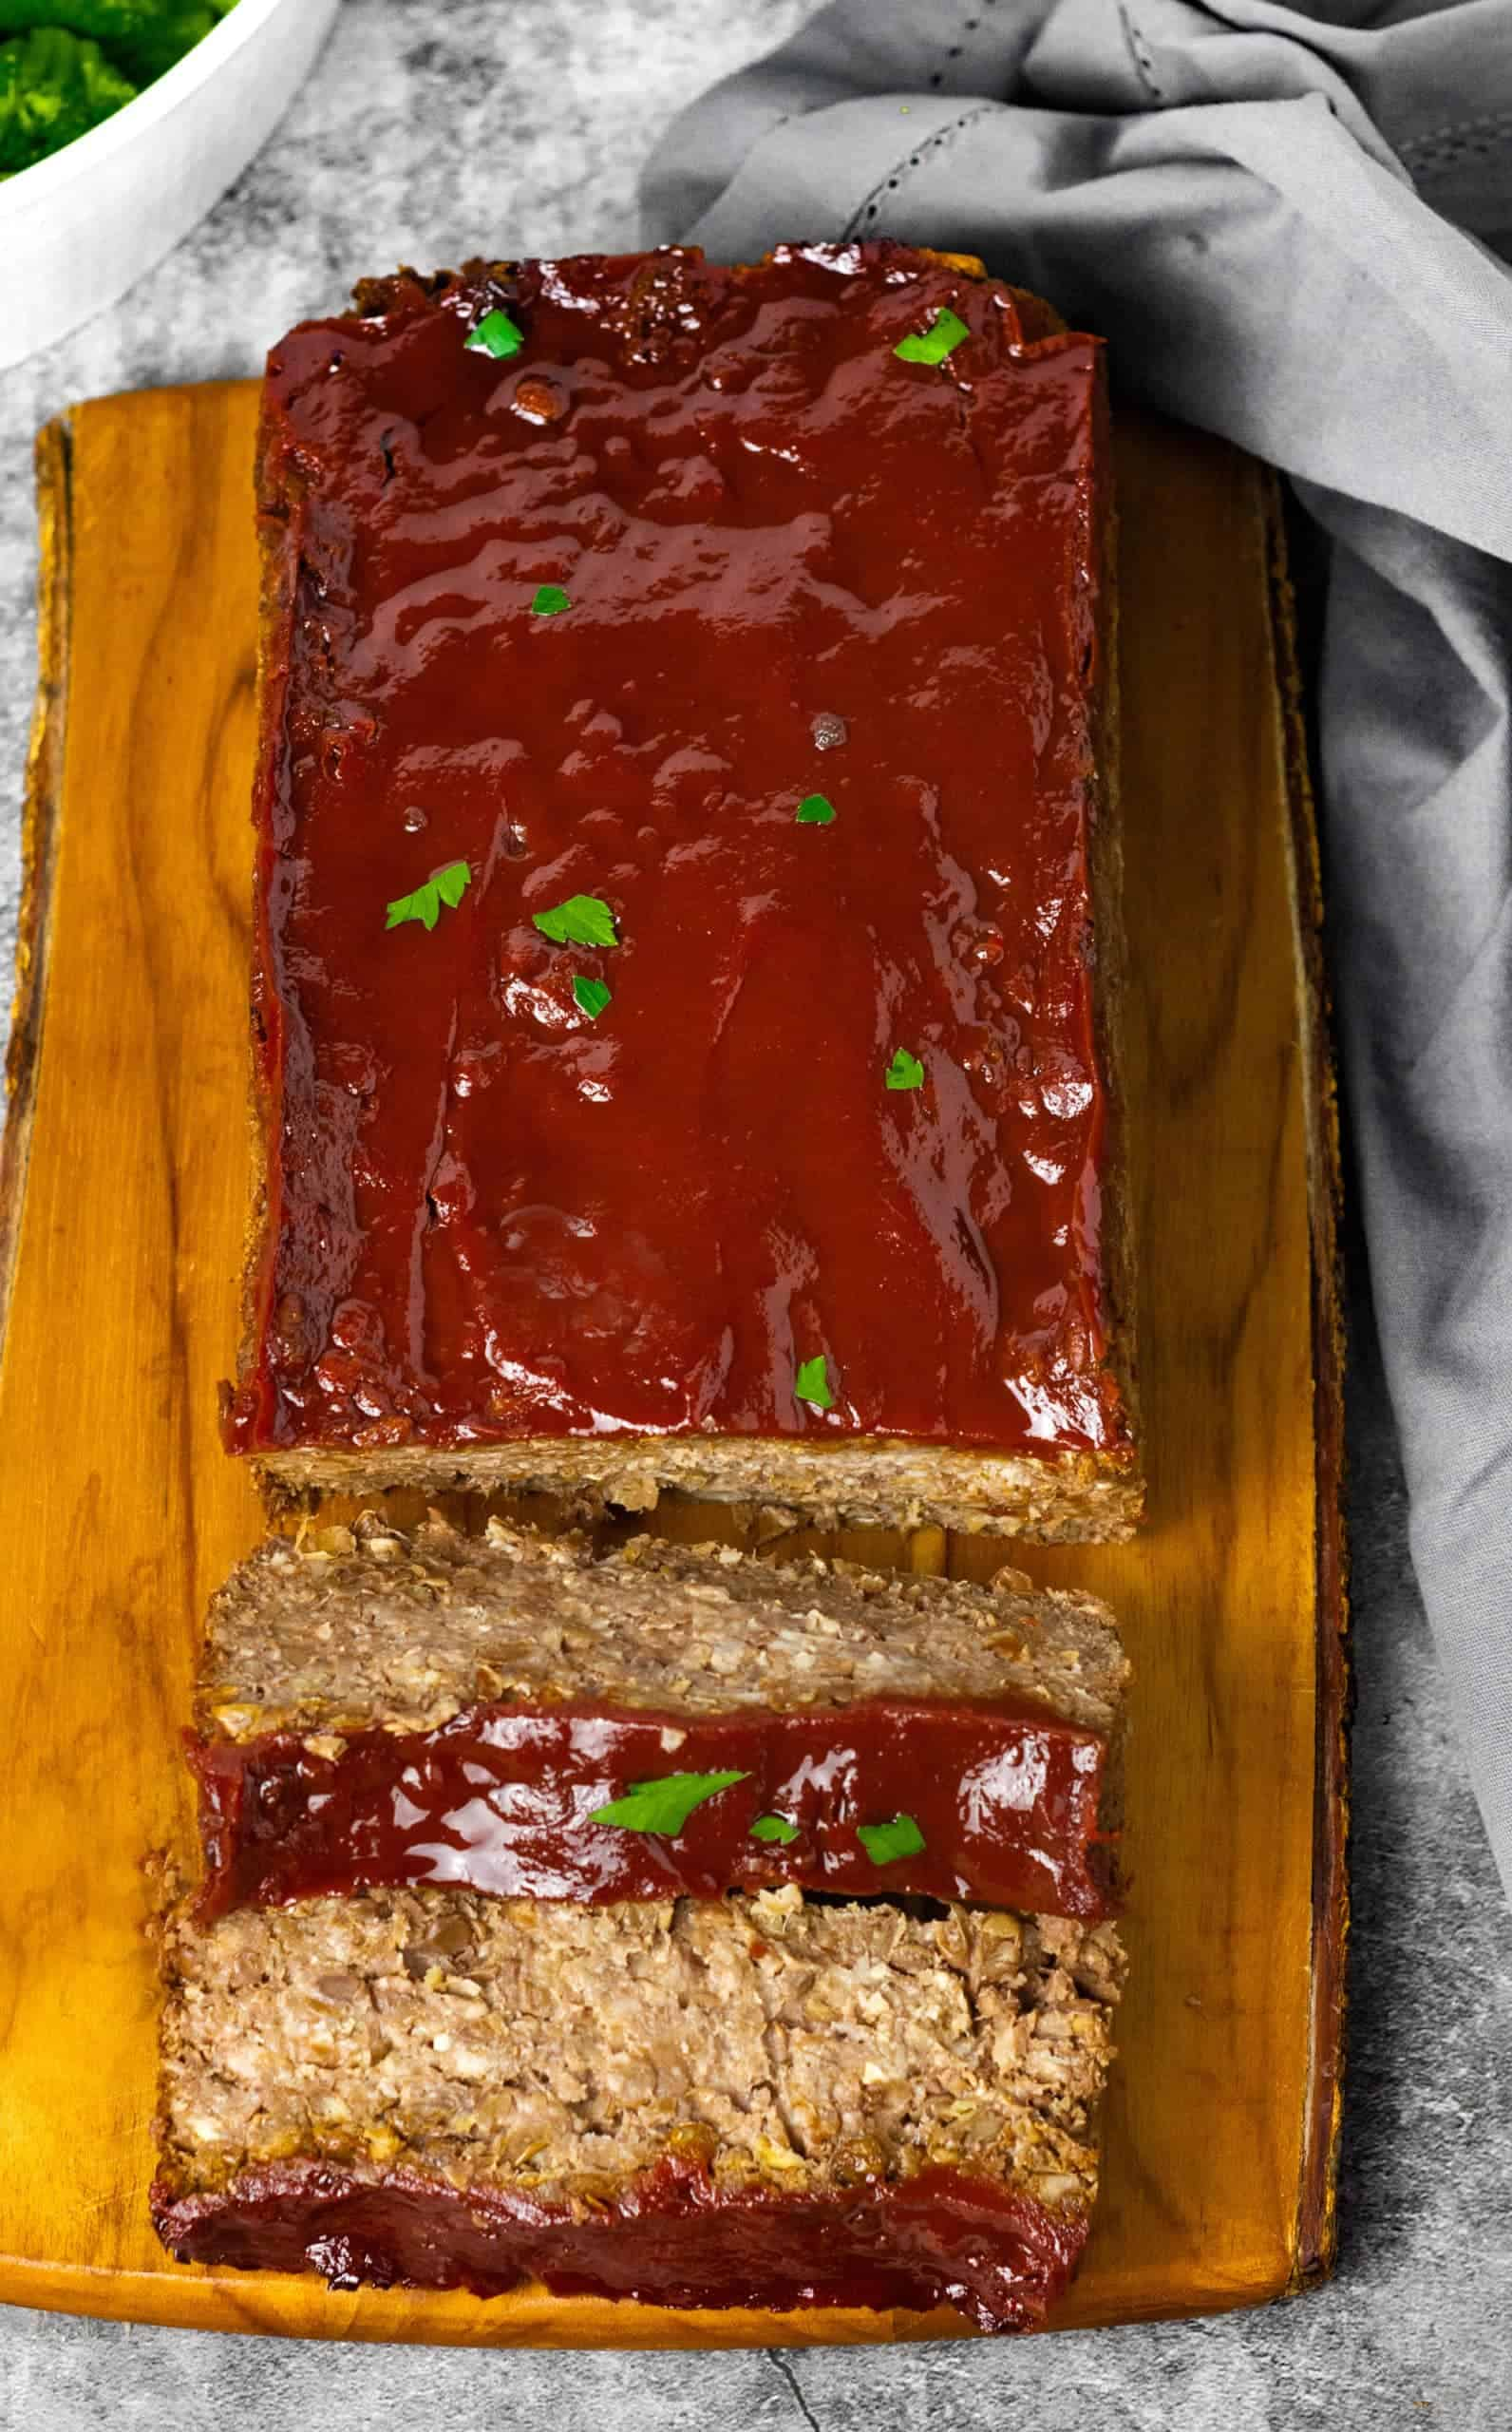 Overlay of vegan lentil loaf on a wooden cutting board with grey napkin on a grey background